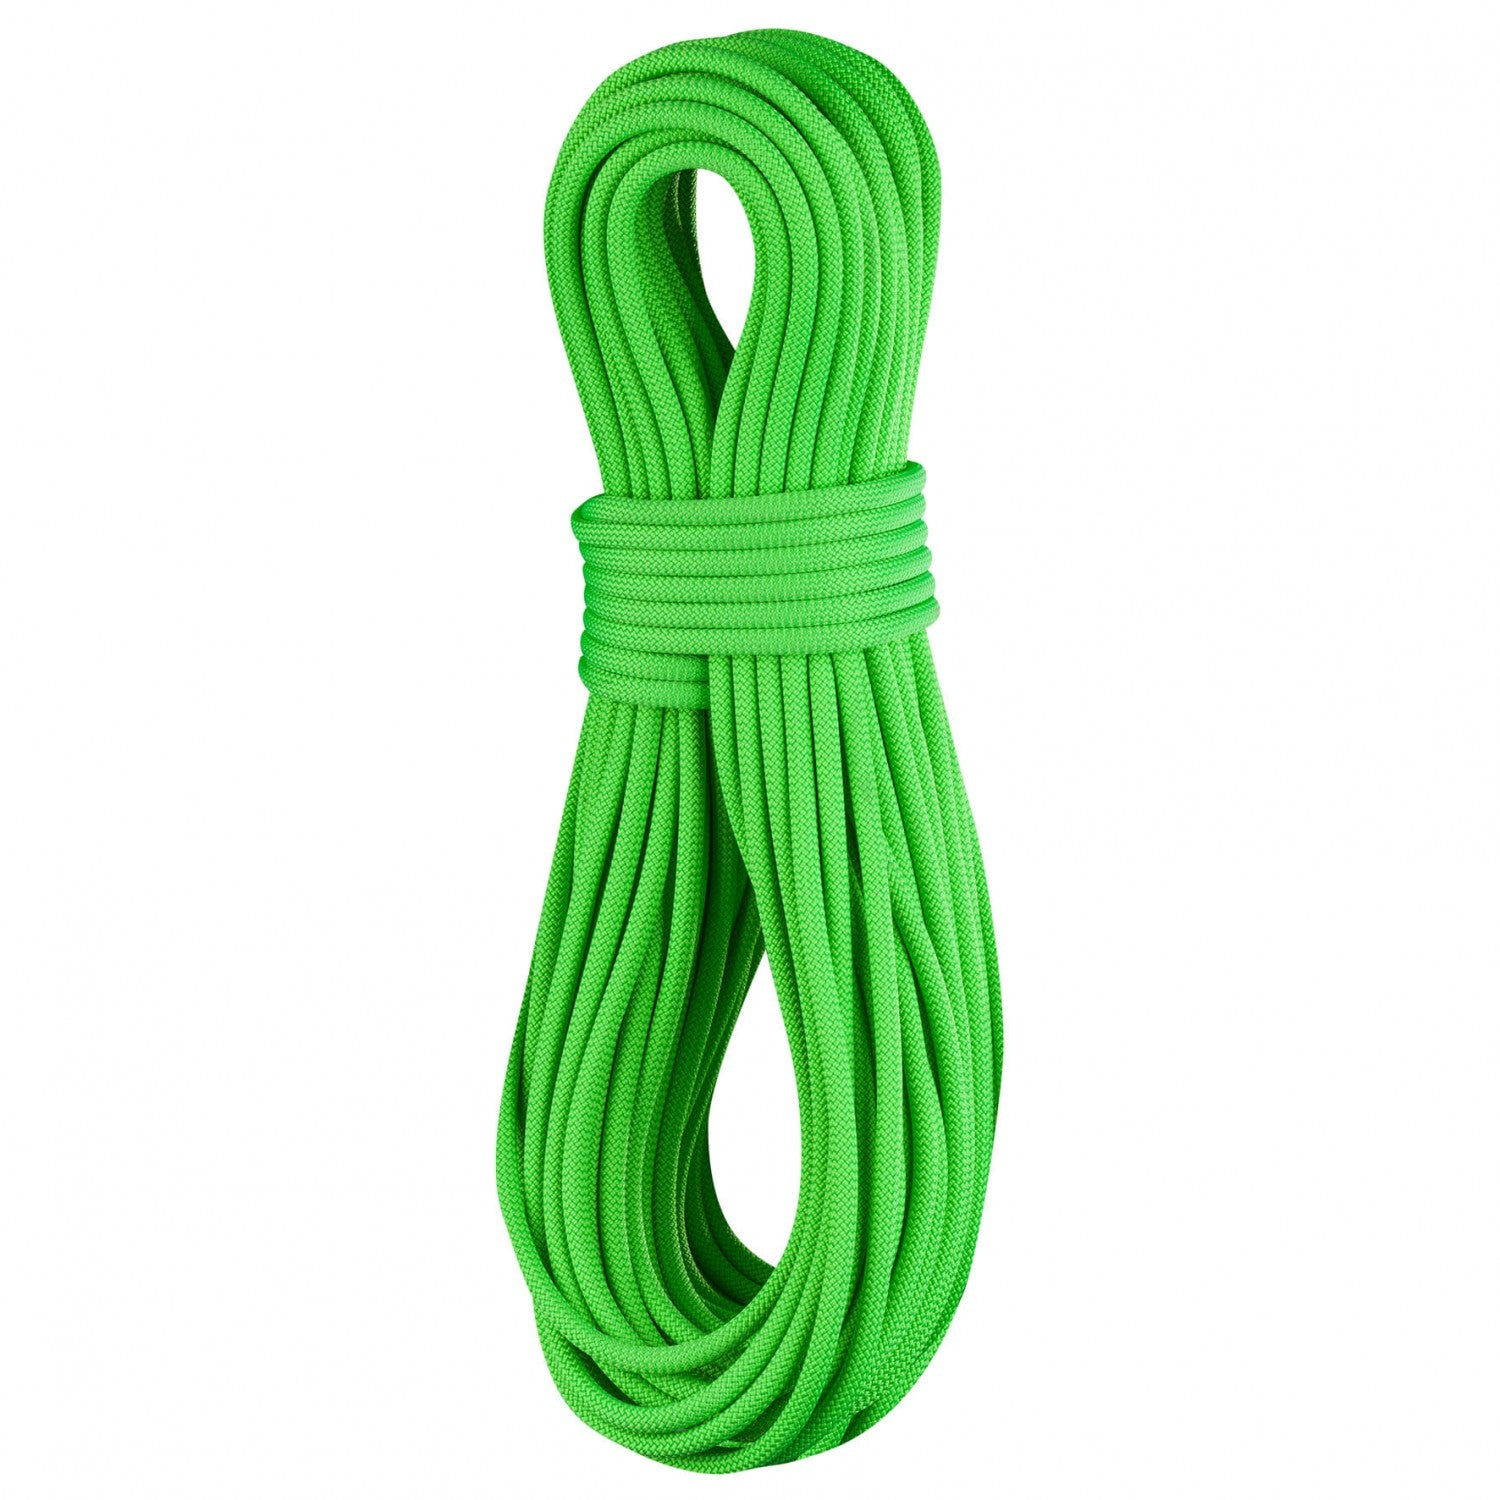 Edelrid Canary Pro Dry 8.6mm x 60m